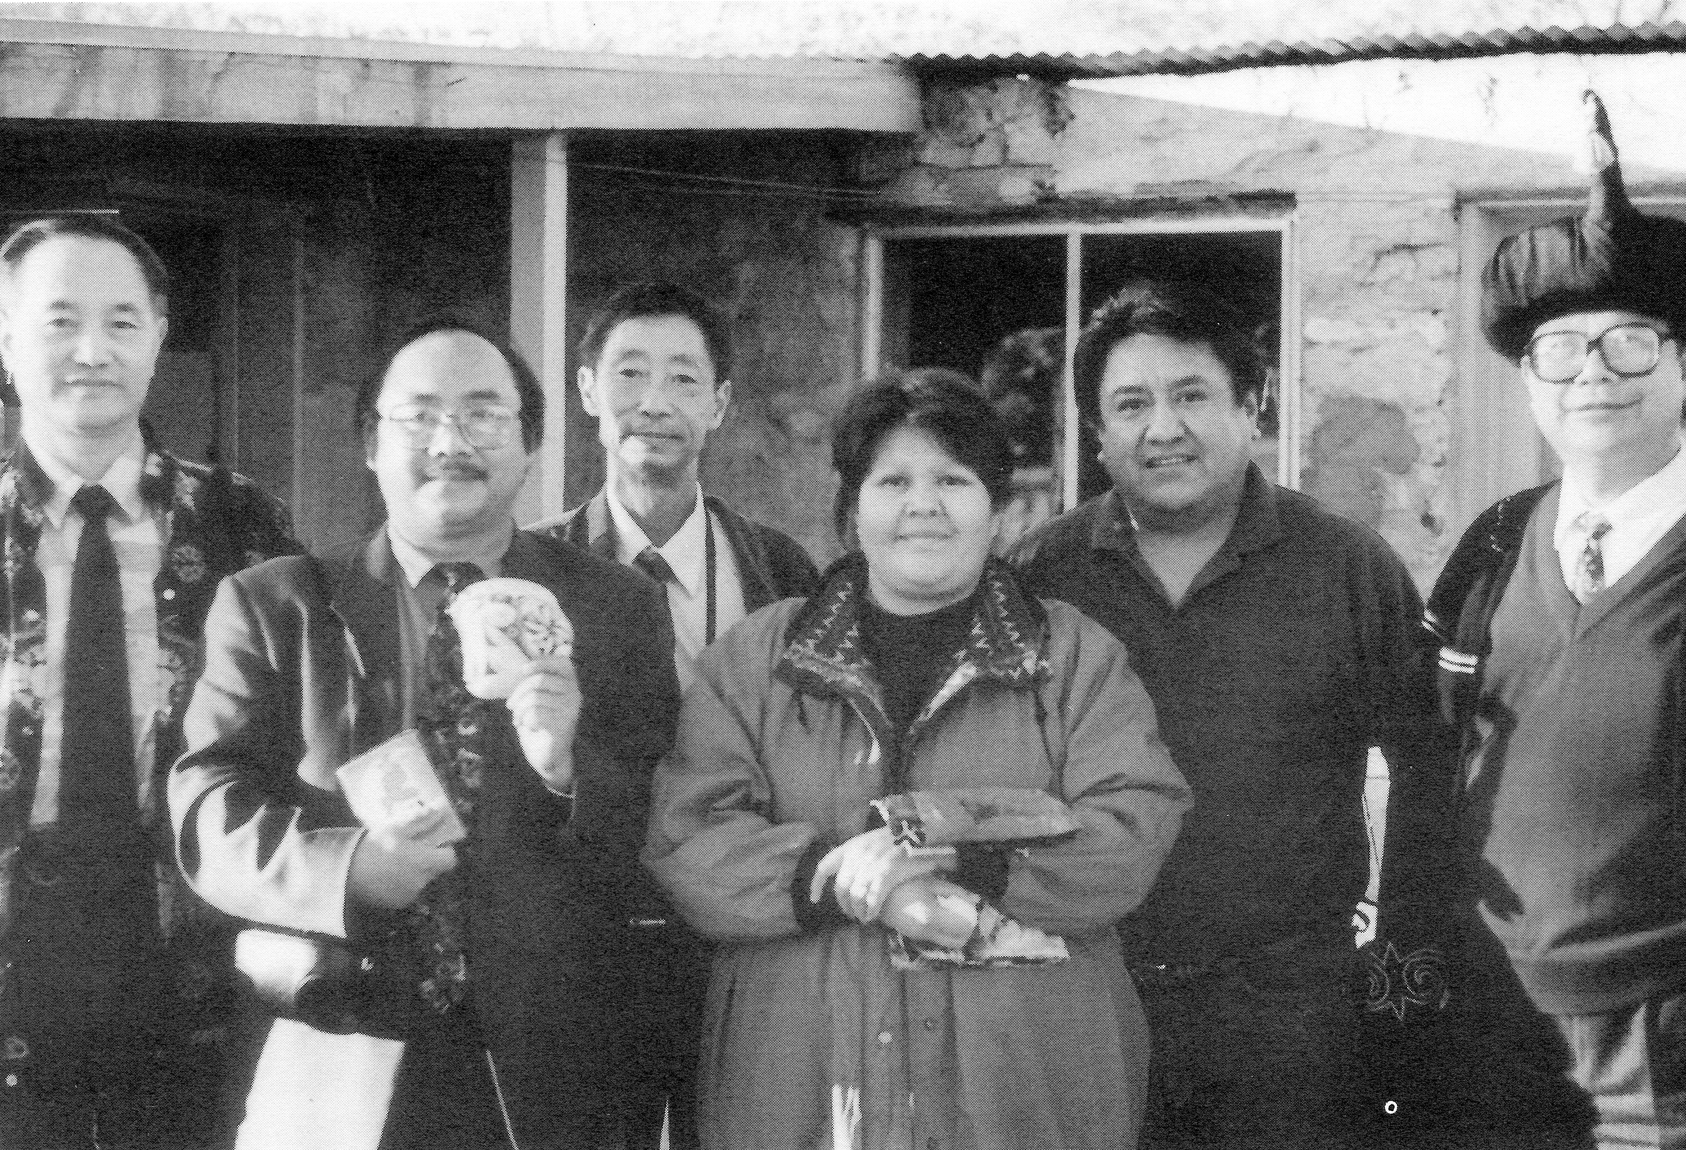 Internationally recognized potters Barbara and Joseph Cerno (third and second from right) offered shards of ancient pots, which they use to create new works, to Yunnan Nationalities Institute representatives (left to right) Yang Dejun, Wang Sidai, Yang Jun, and Pu Tongjin (far right). Photo was taken at the Cerno's home and studio near Acoma Pueblo in Grants, New Mexico.